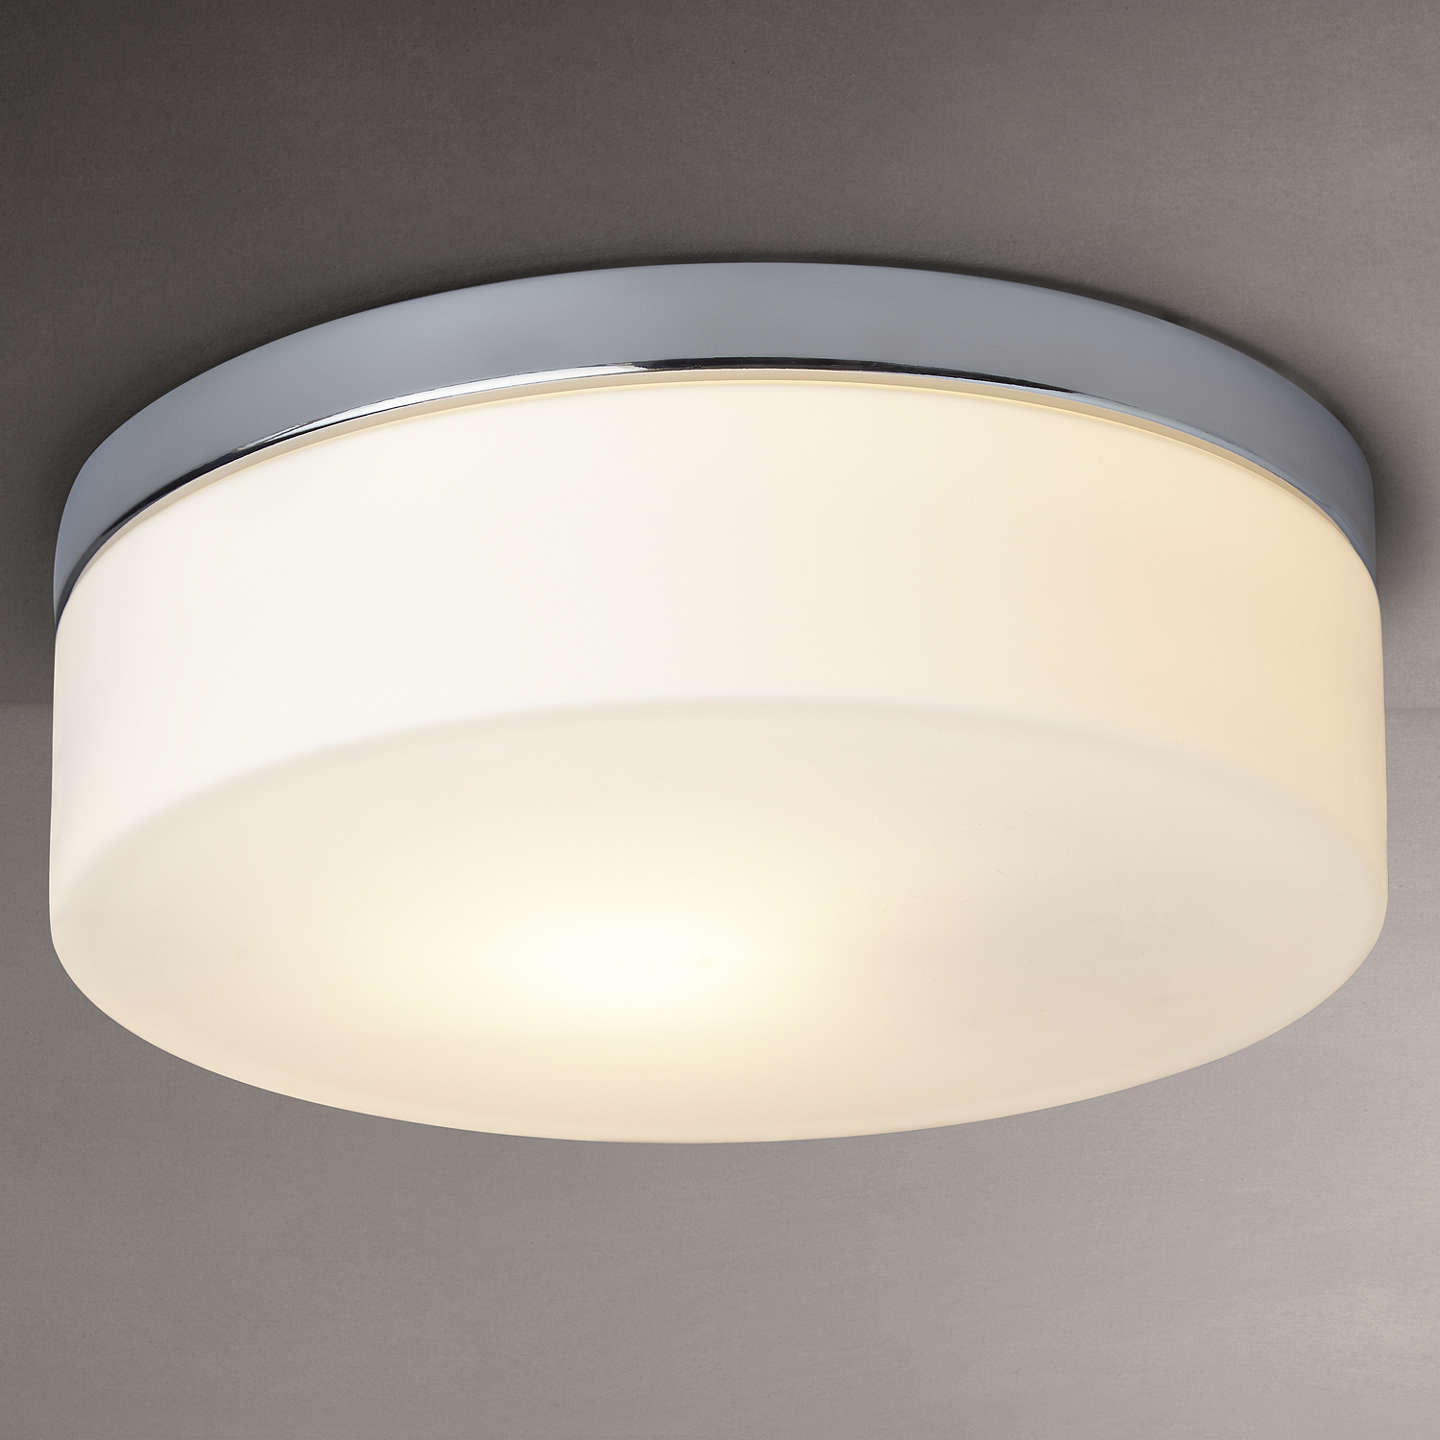 Astro sabina round flush bathroom ceiling light at john lewis buyastro sabina round flush bathroom ceiling light online at johnlewis mozeypictures